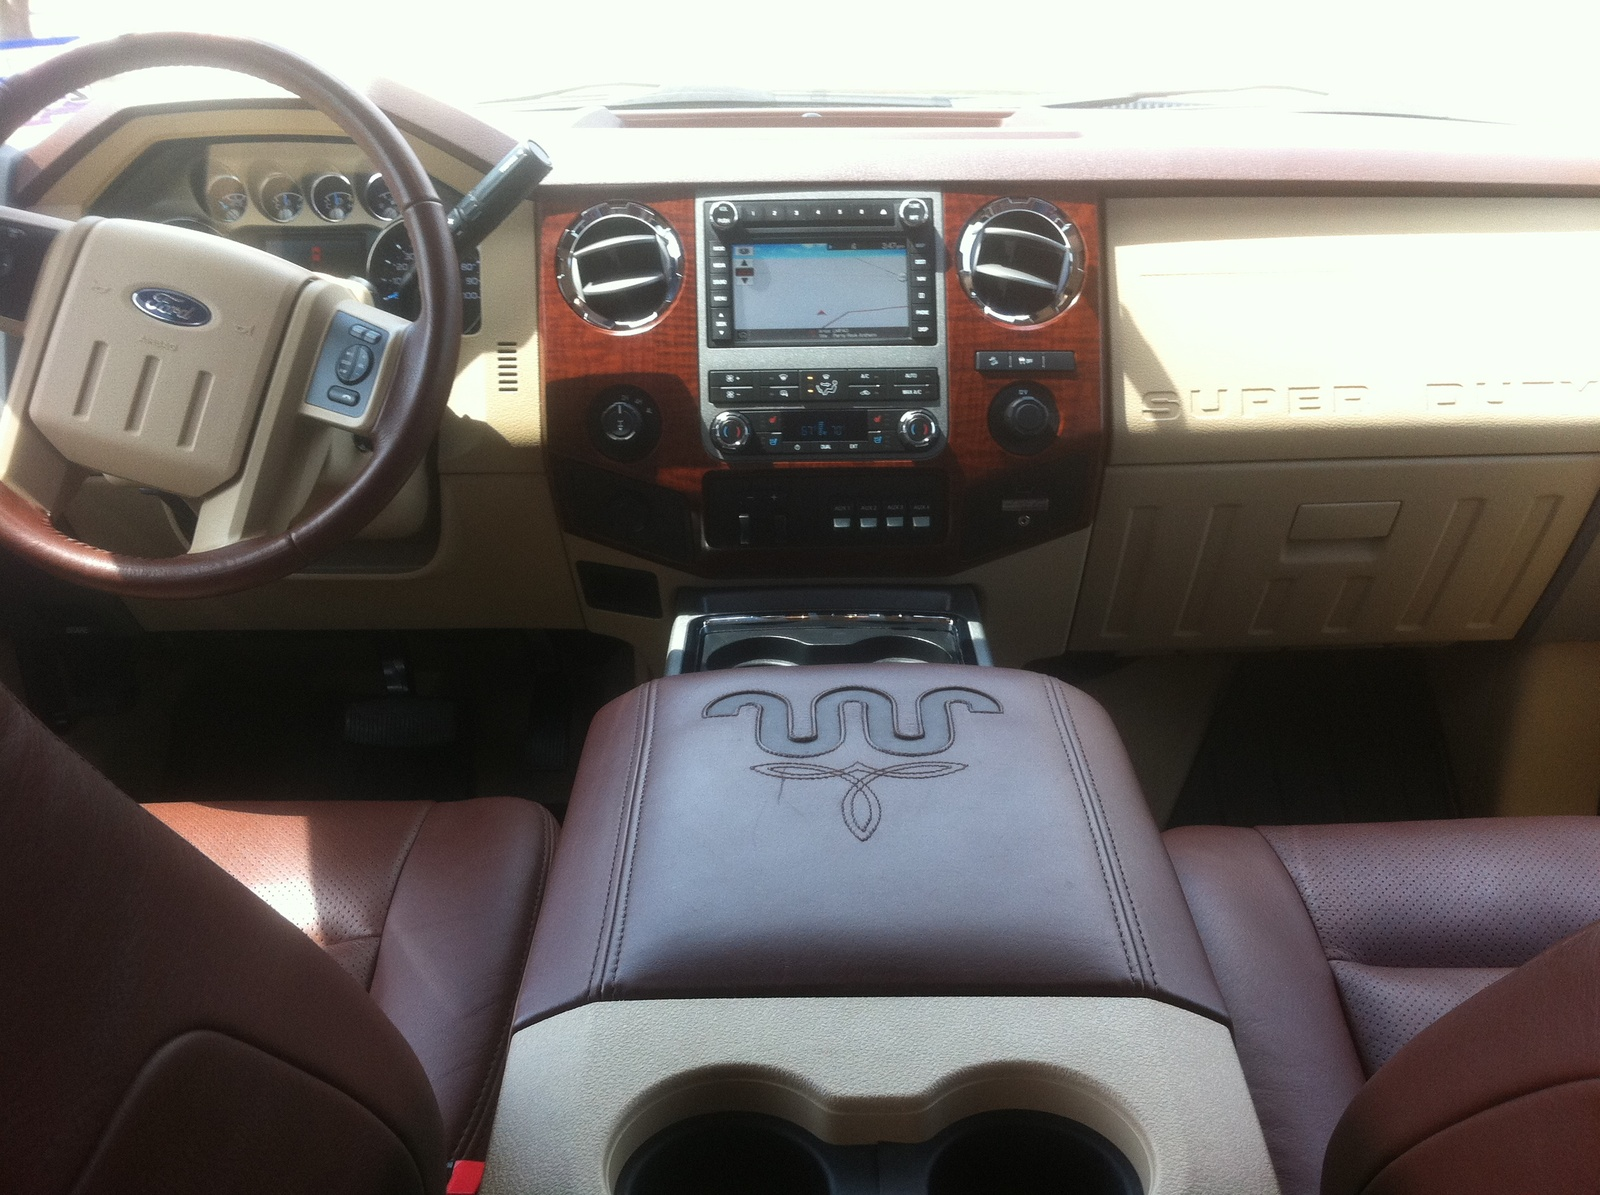 2008 Ford F250 King Ranch Interior